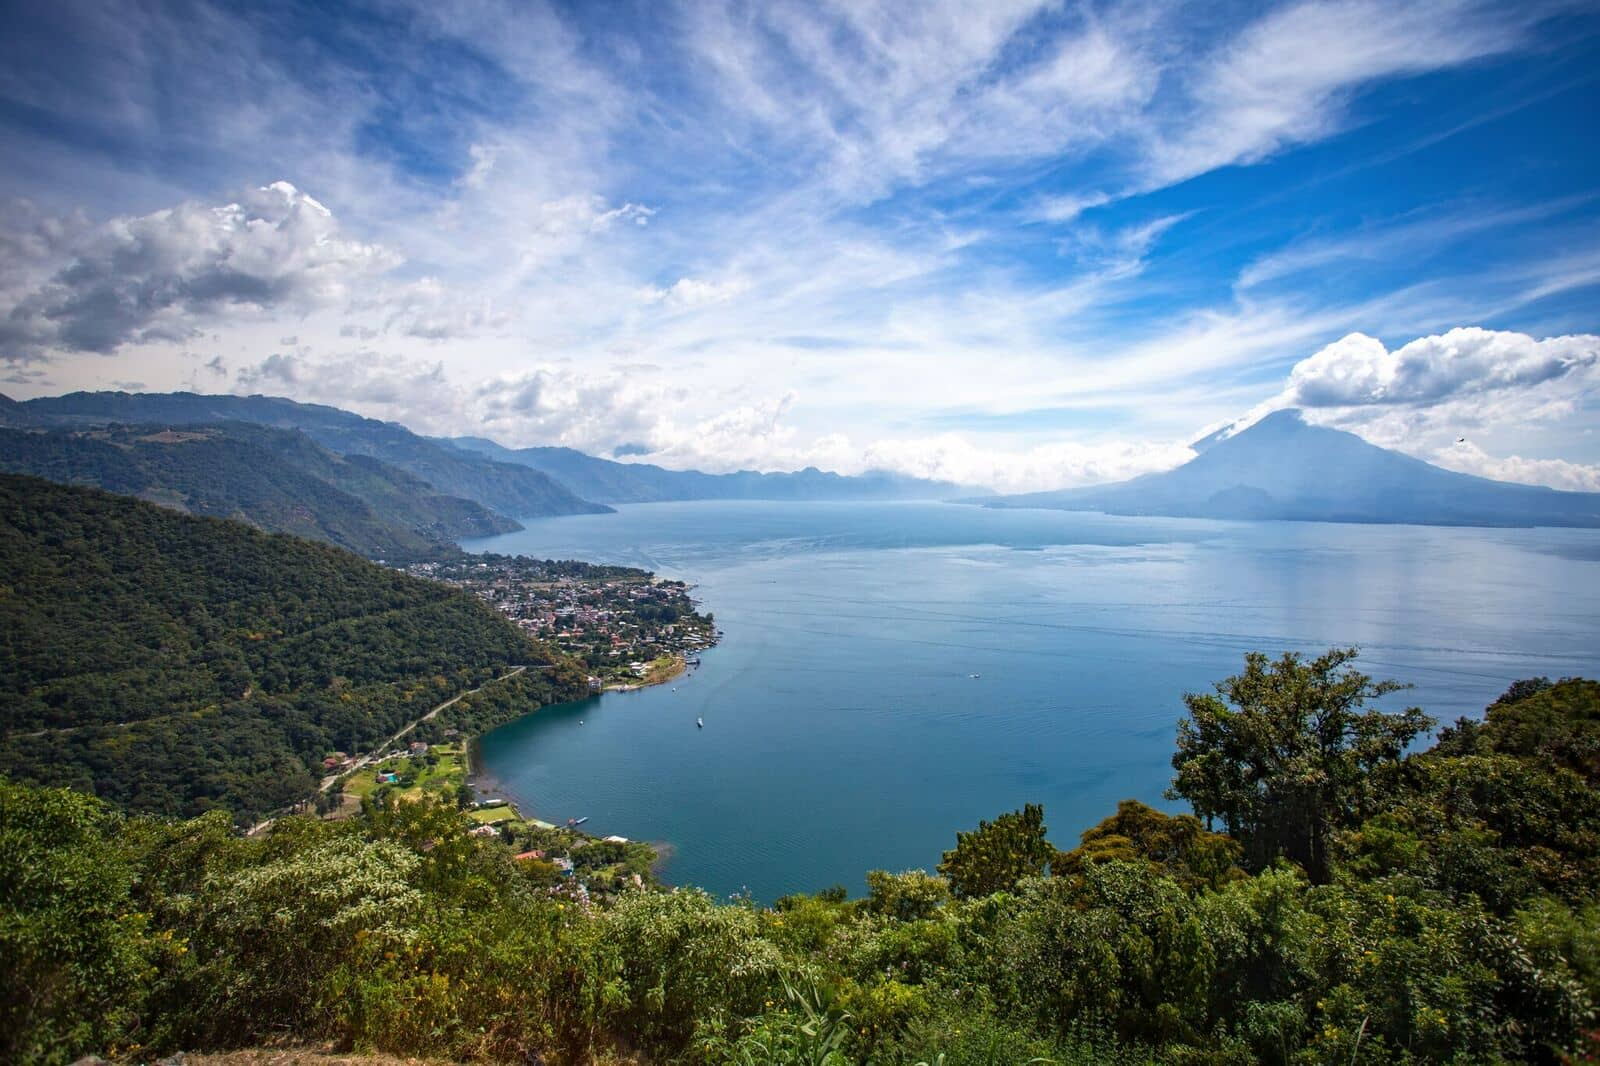 Day 3 - Wednesday: Free day at Atitlan